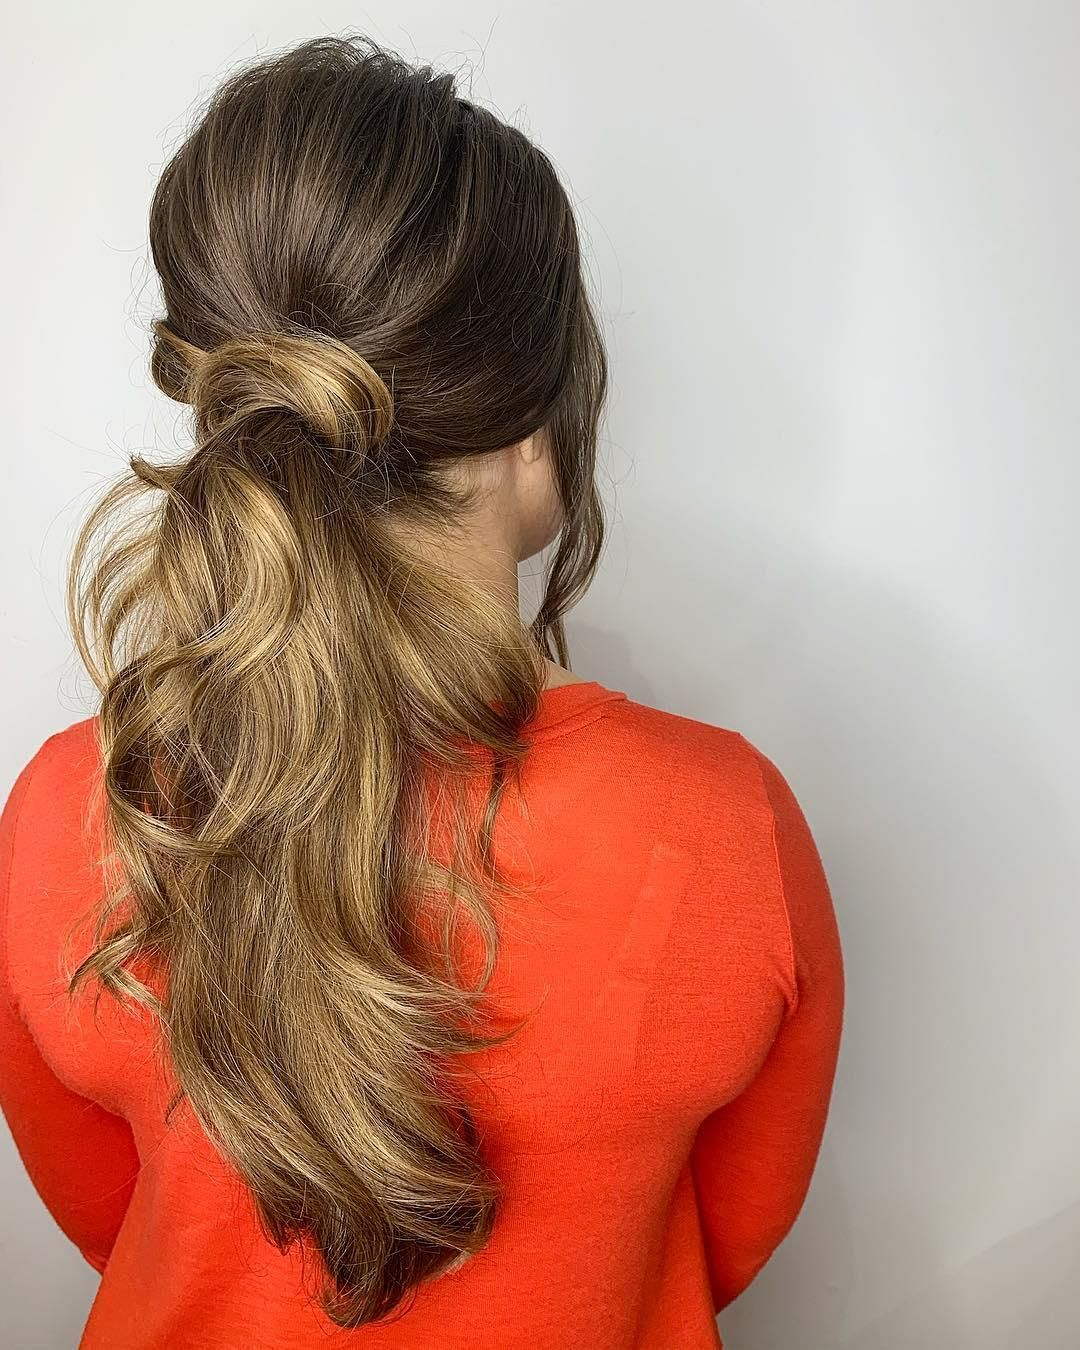 Wedding Hairstyle Near Me: Stores - Locations And Hours